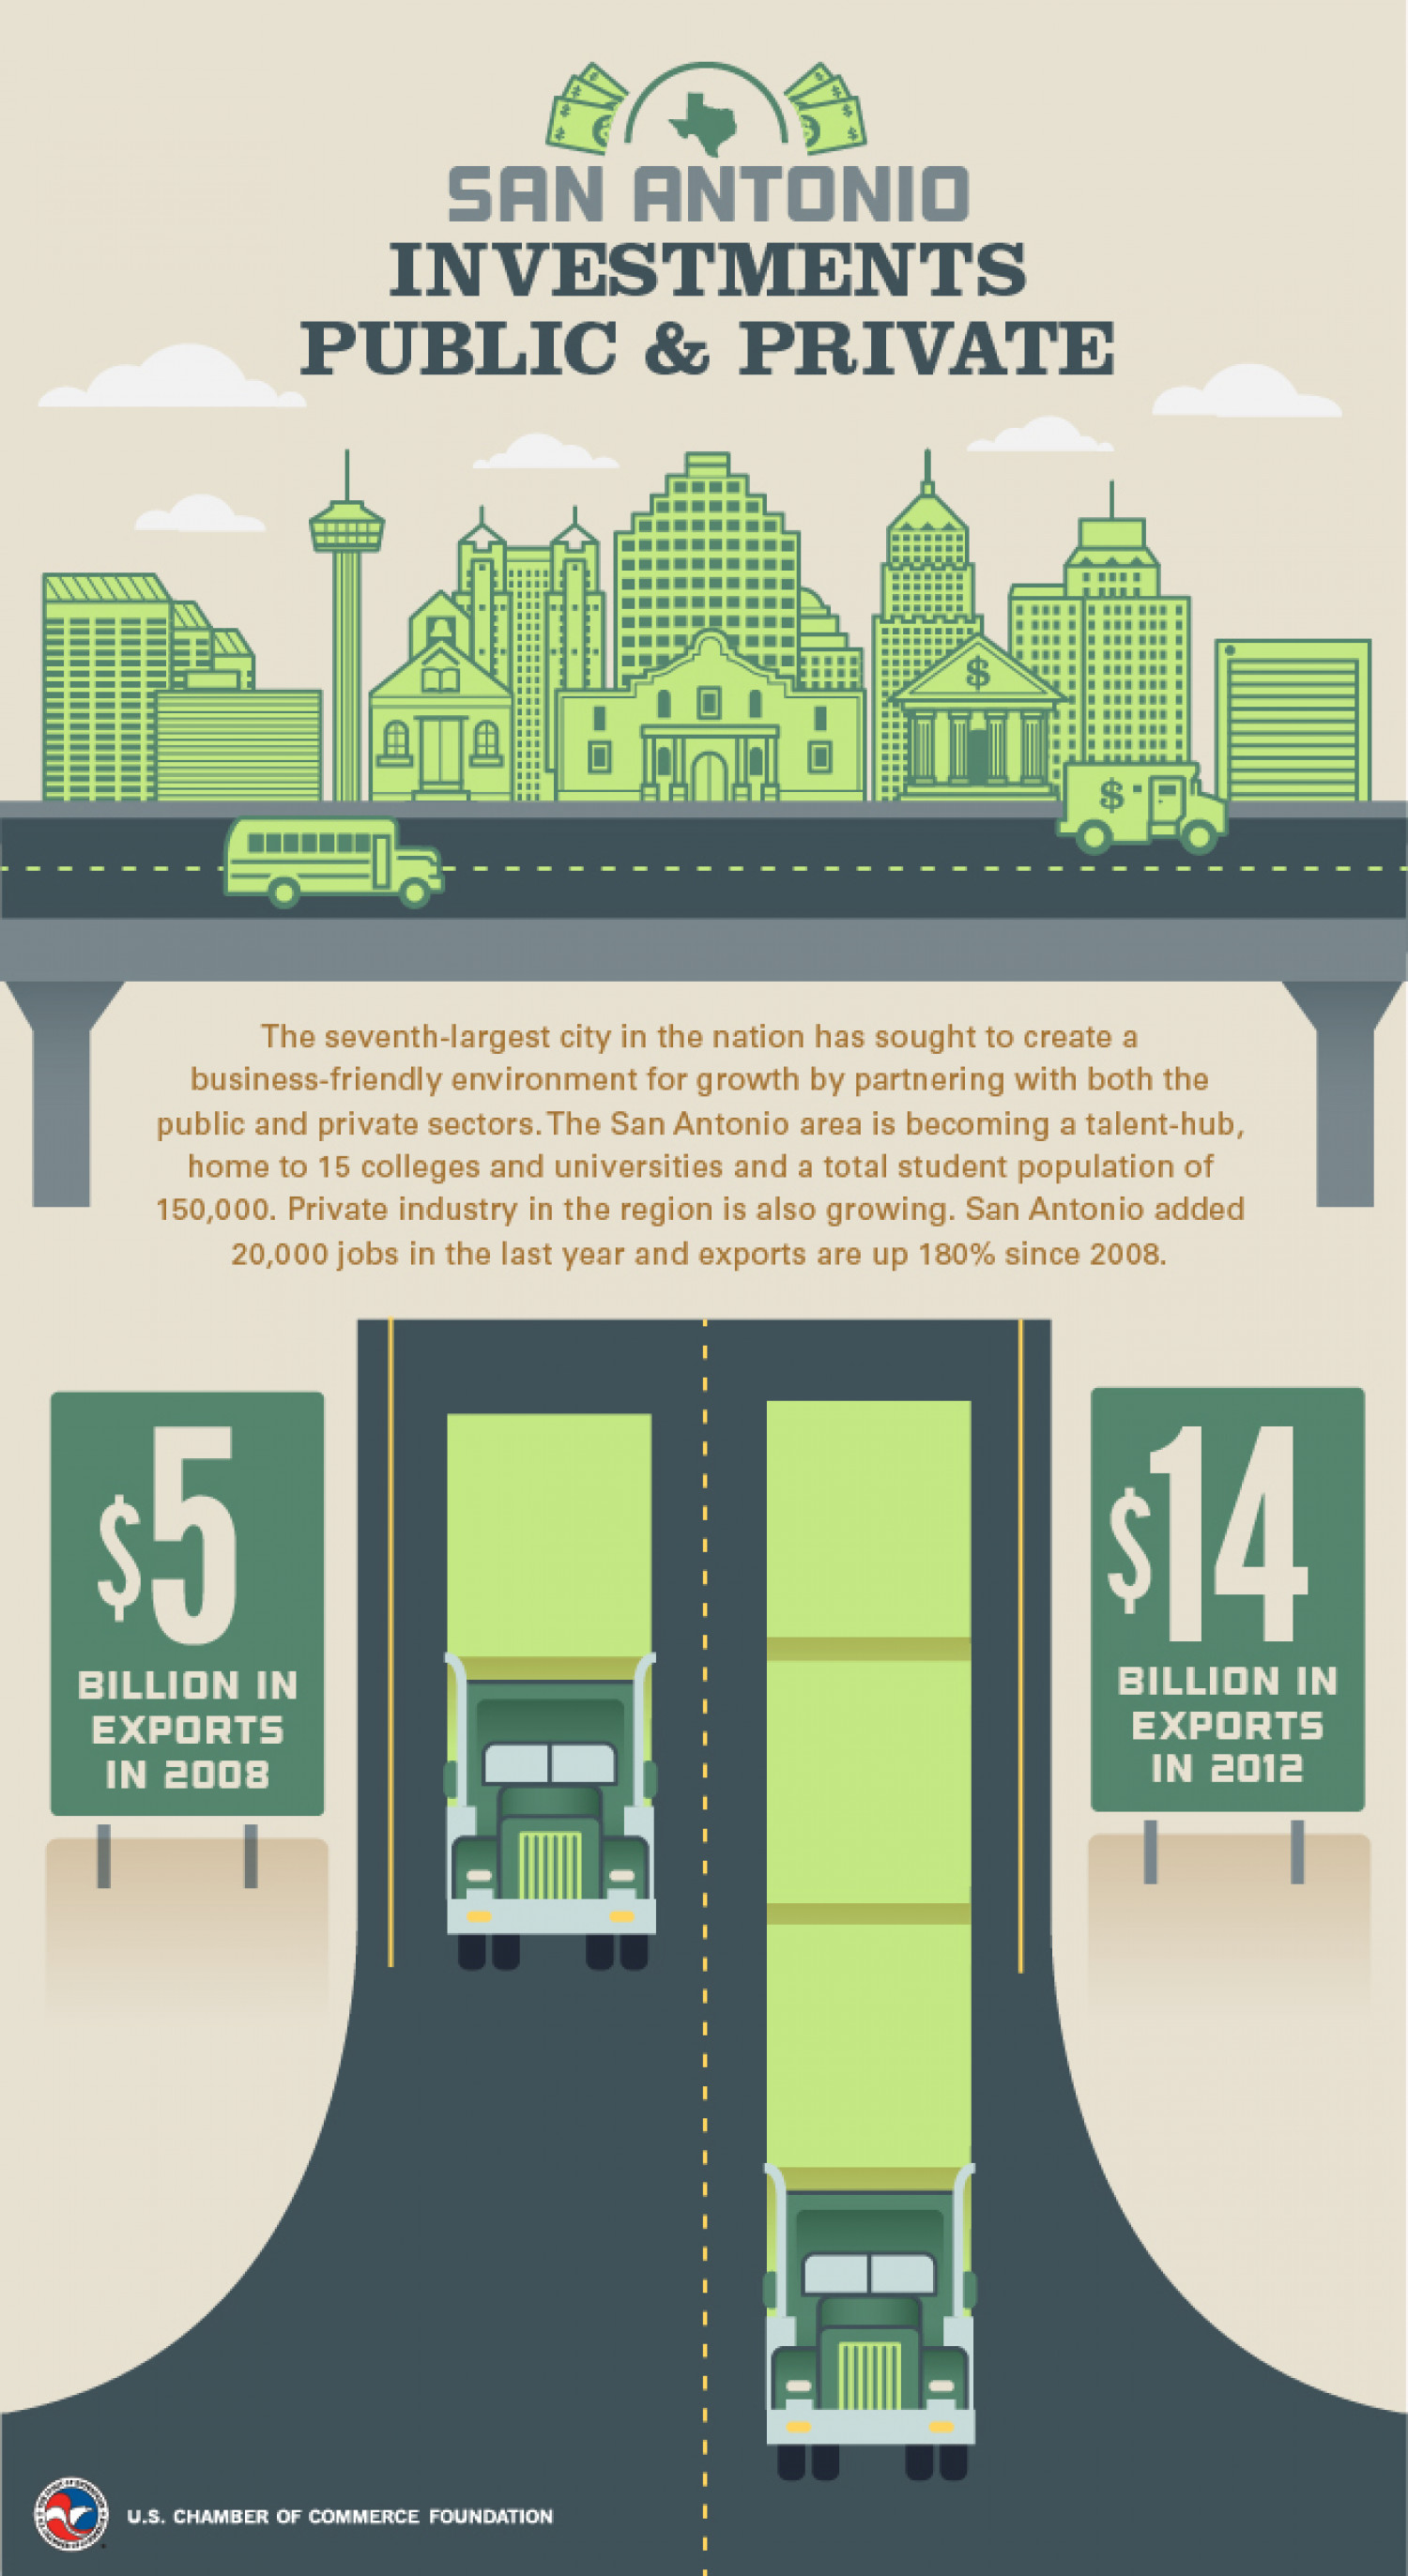 San Antonio, TX: An Enterprising City Infographic